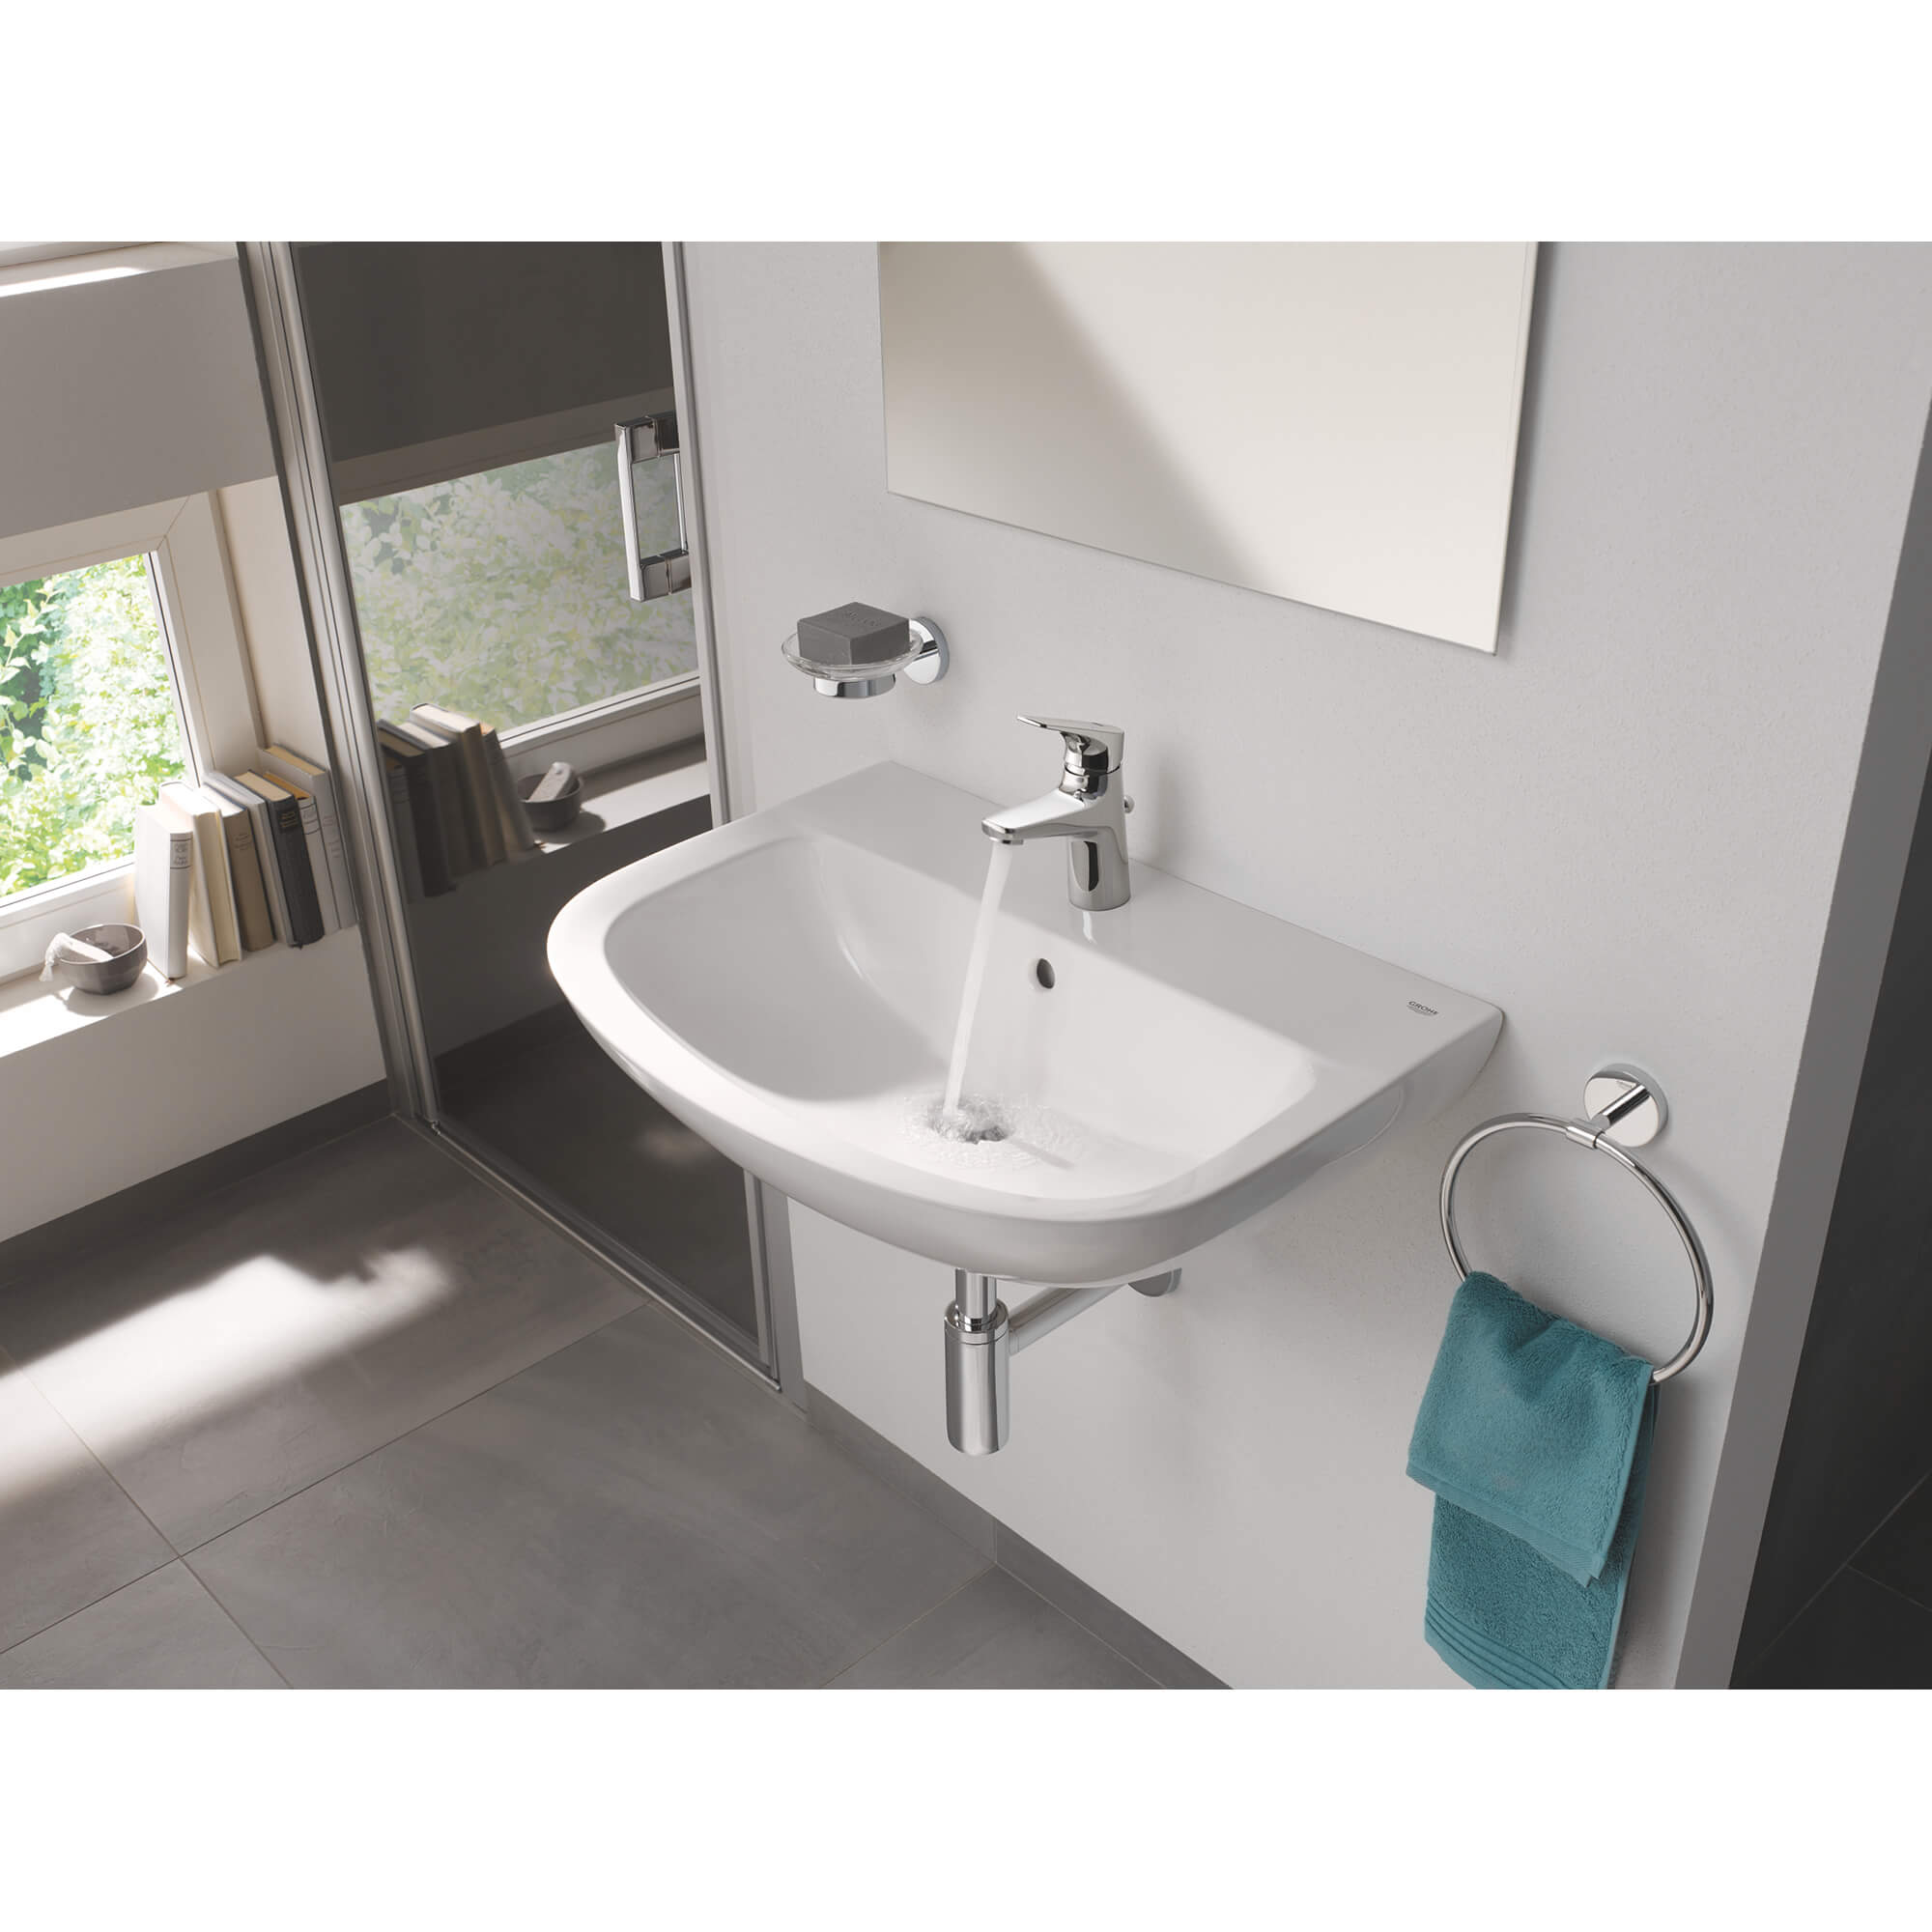 Essentials Porte savon GROHE CHROME